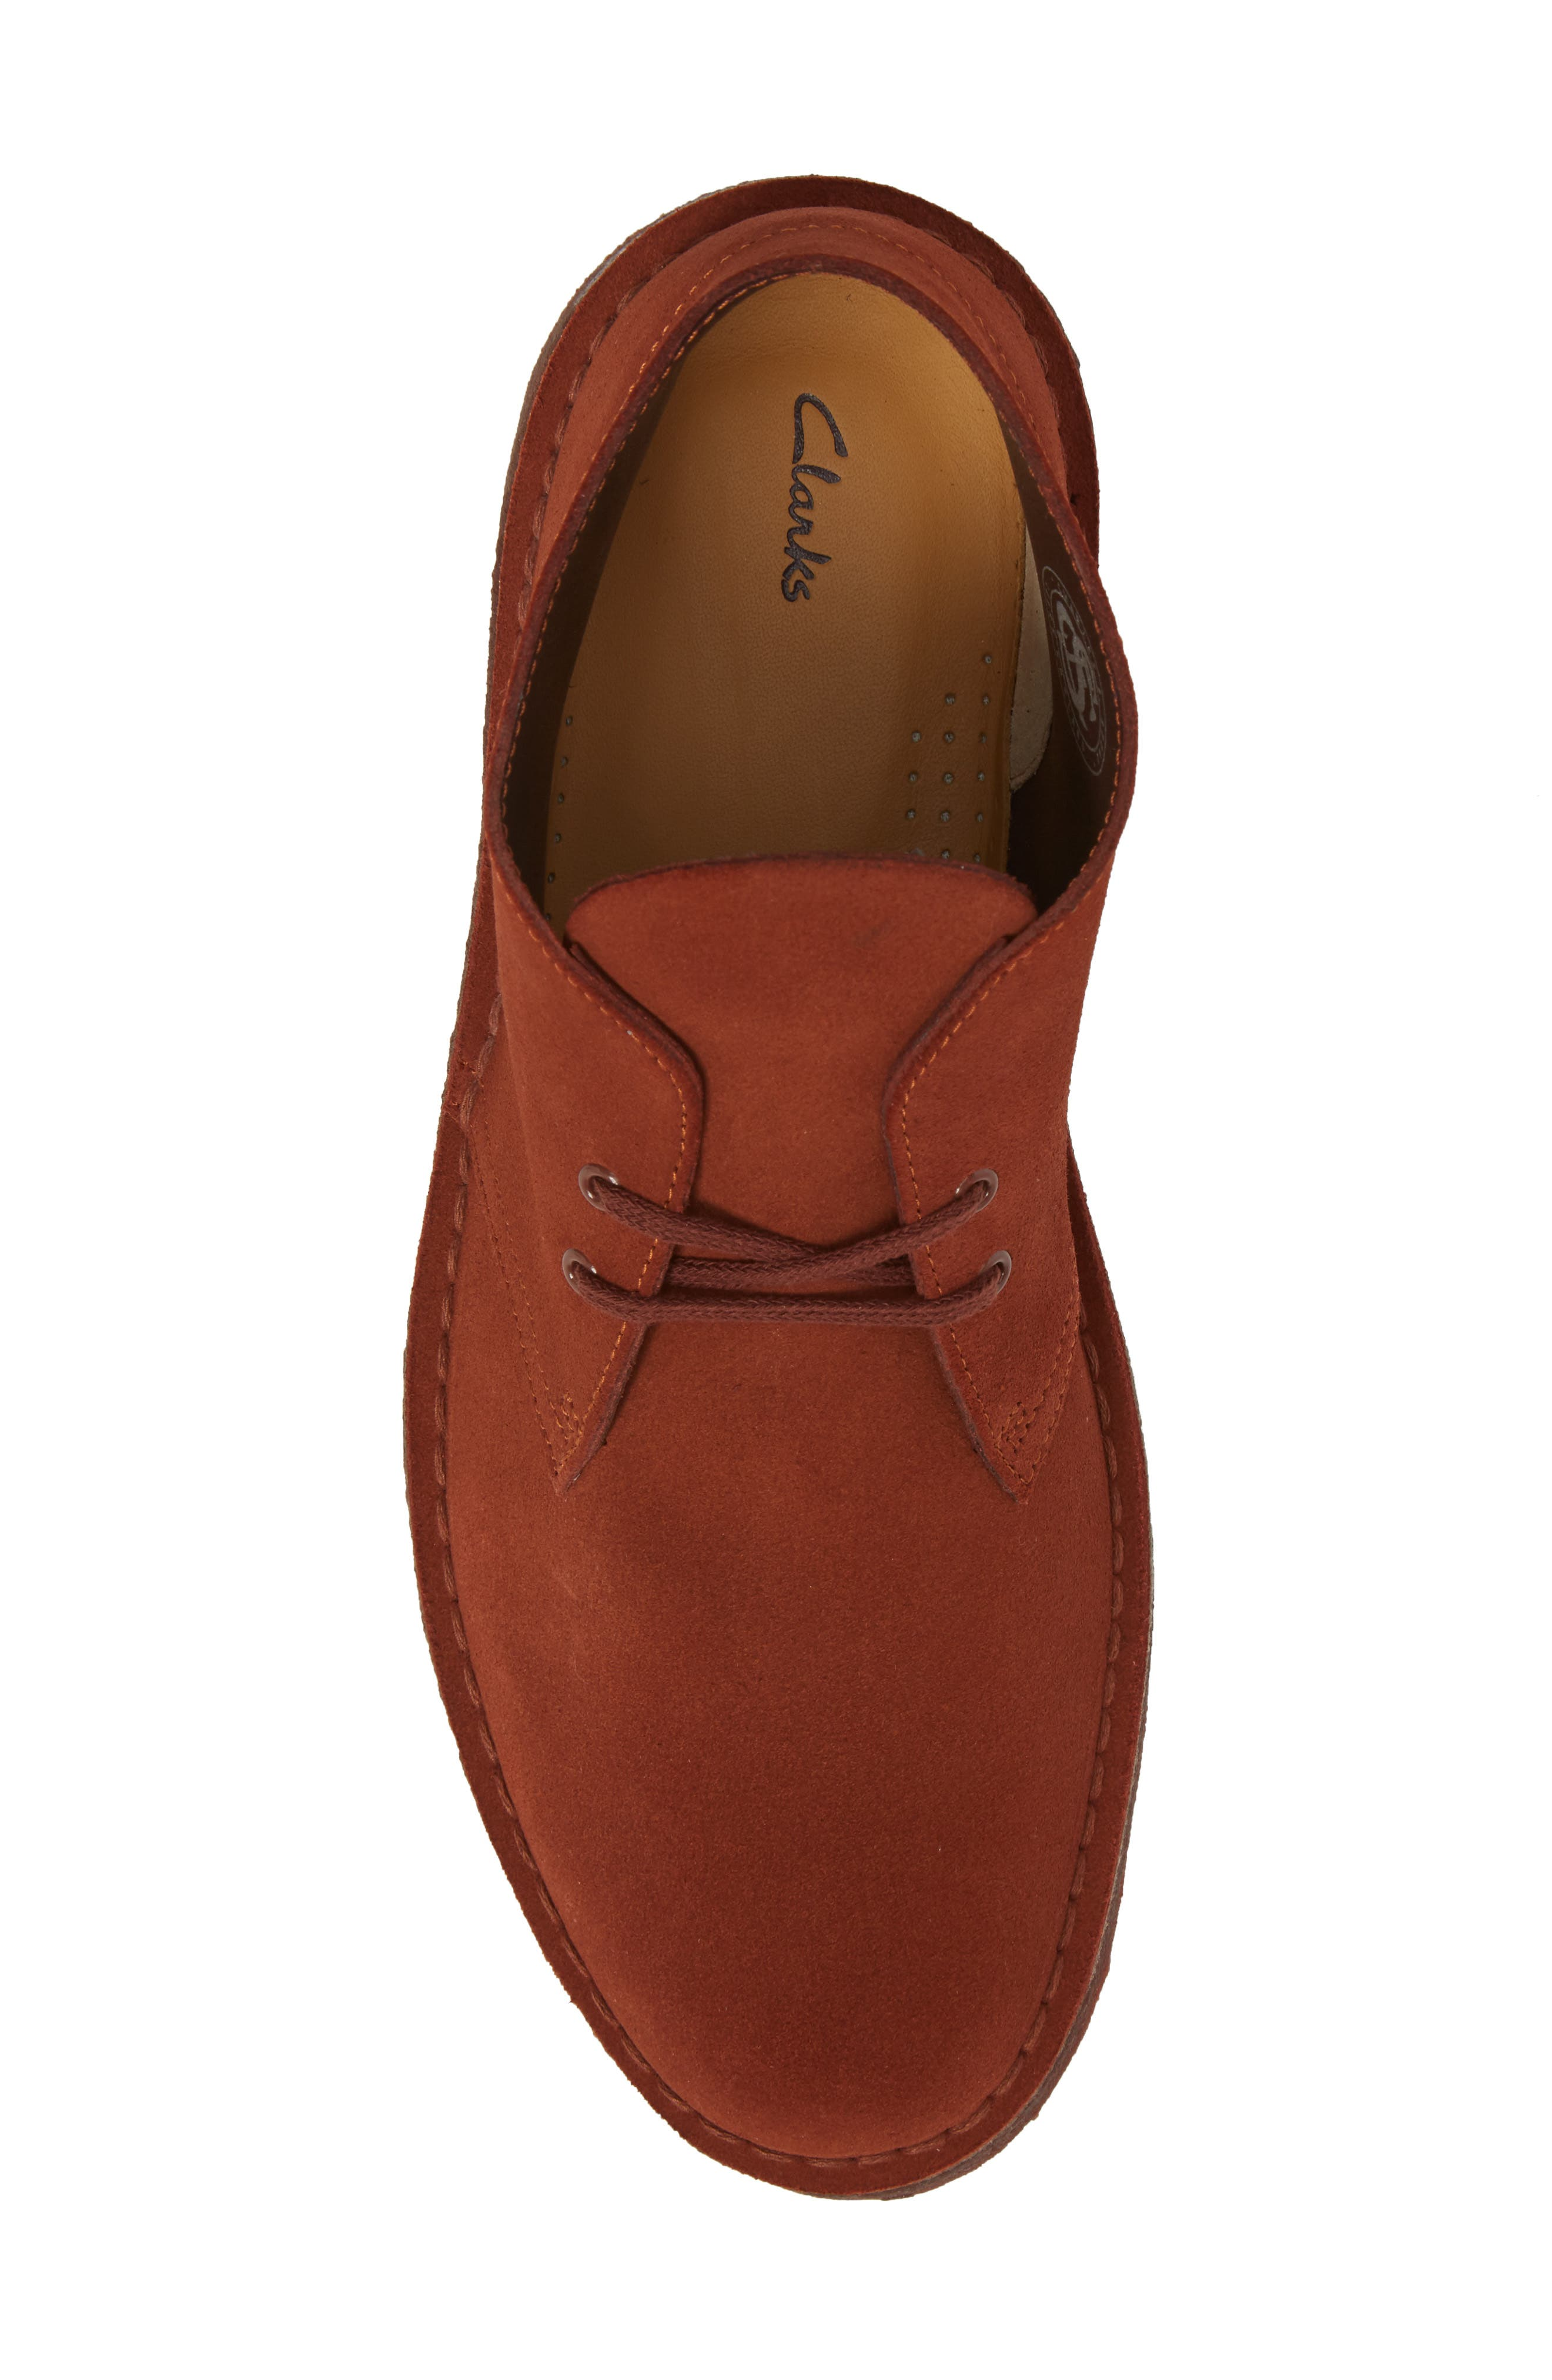 Clarks<sup>®</sup> Desert Boot,                             Alternate thumbnail 5, color,                             MAHOGANY LEATHER